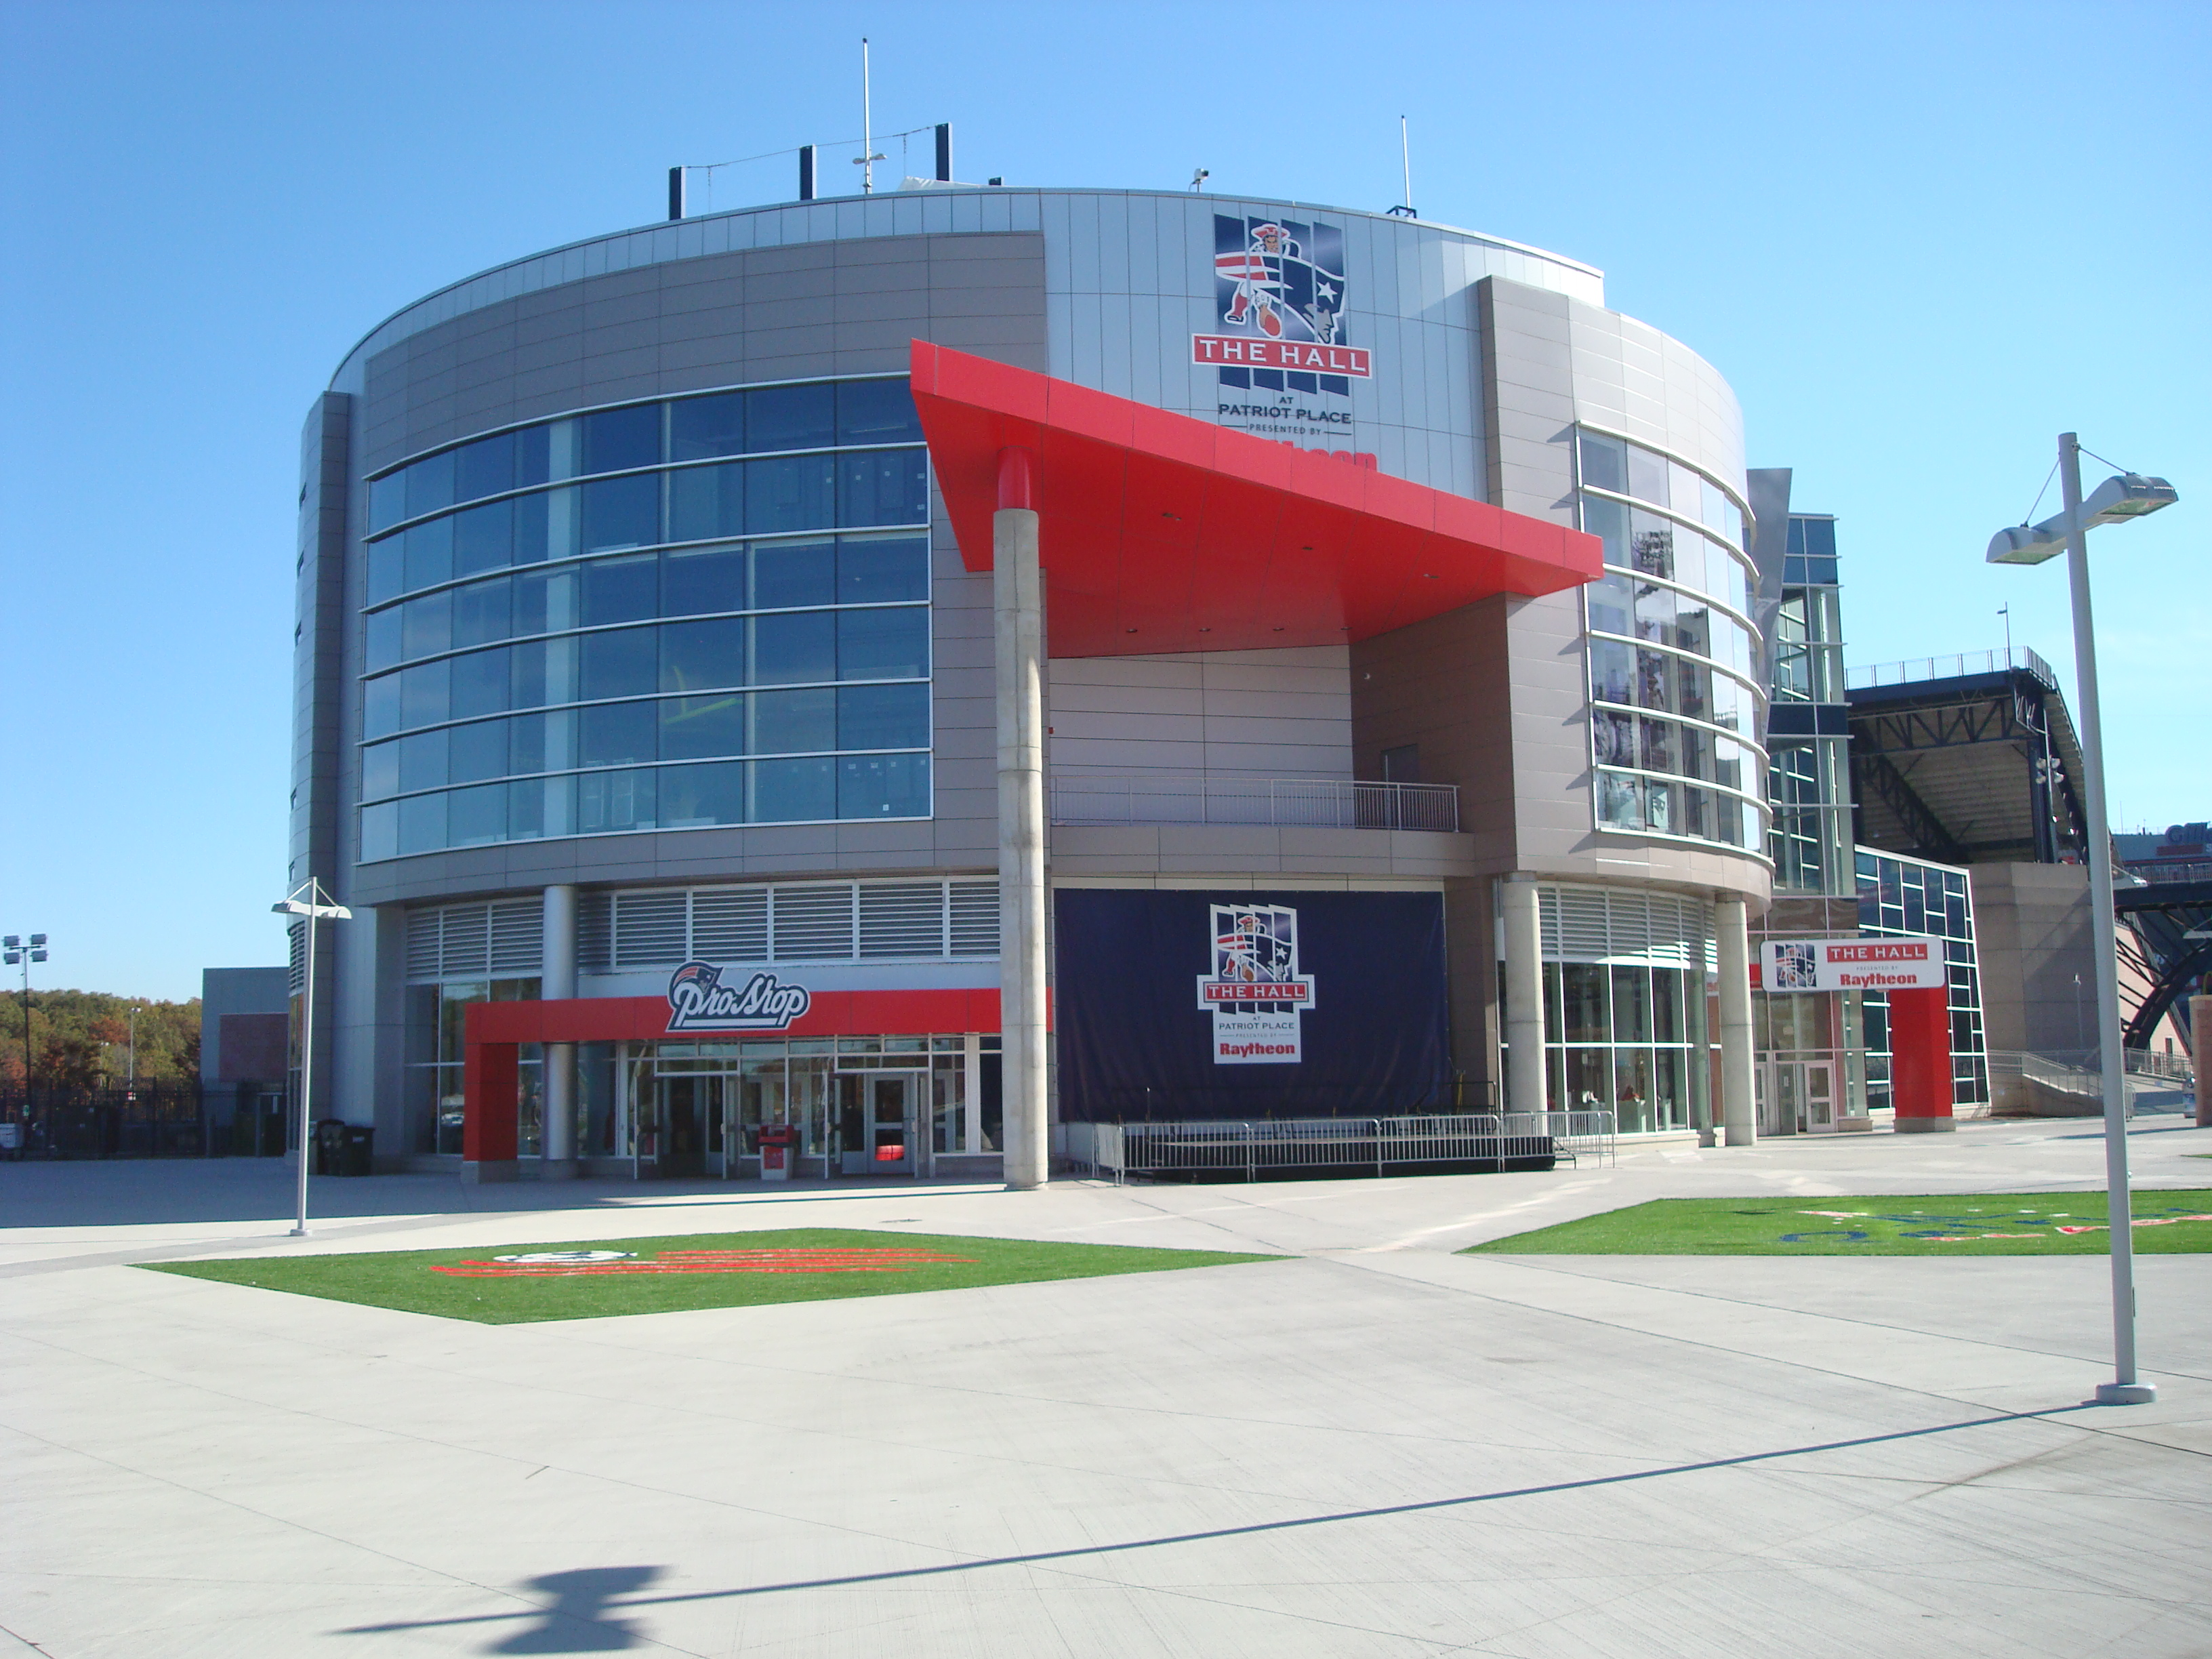 The hall at patriot place at gillette stadium in foxboro massachusetts